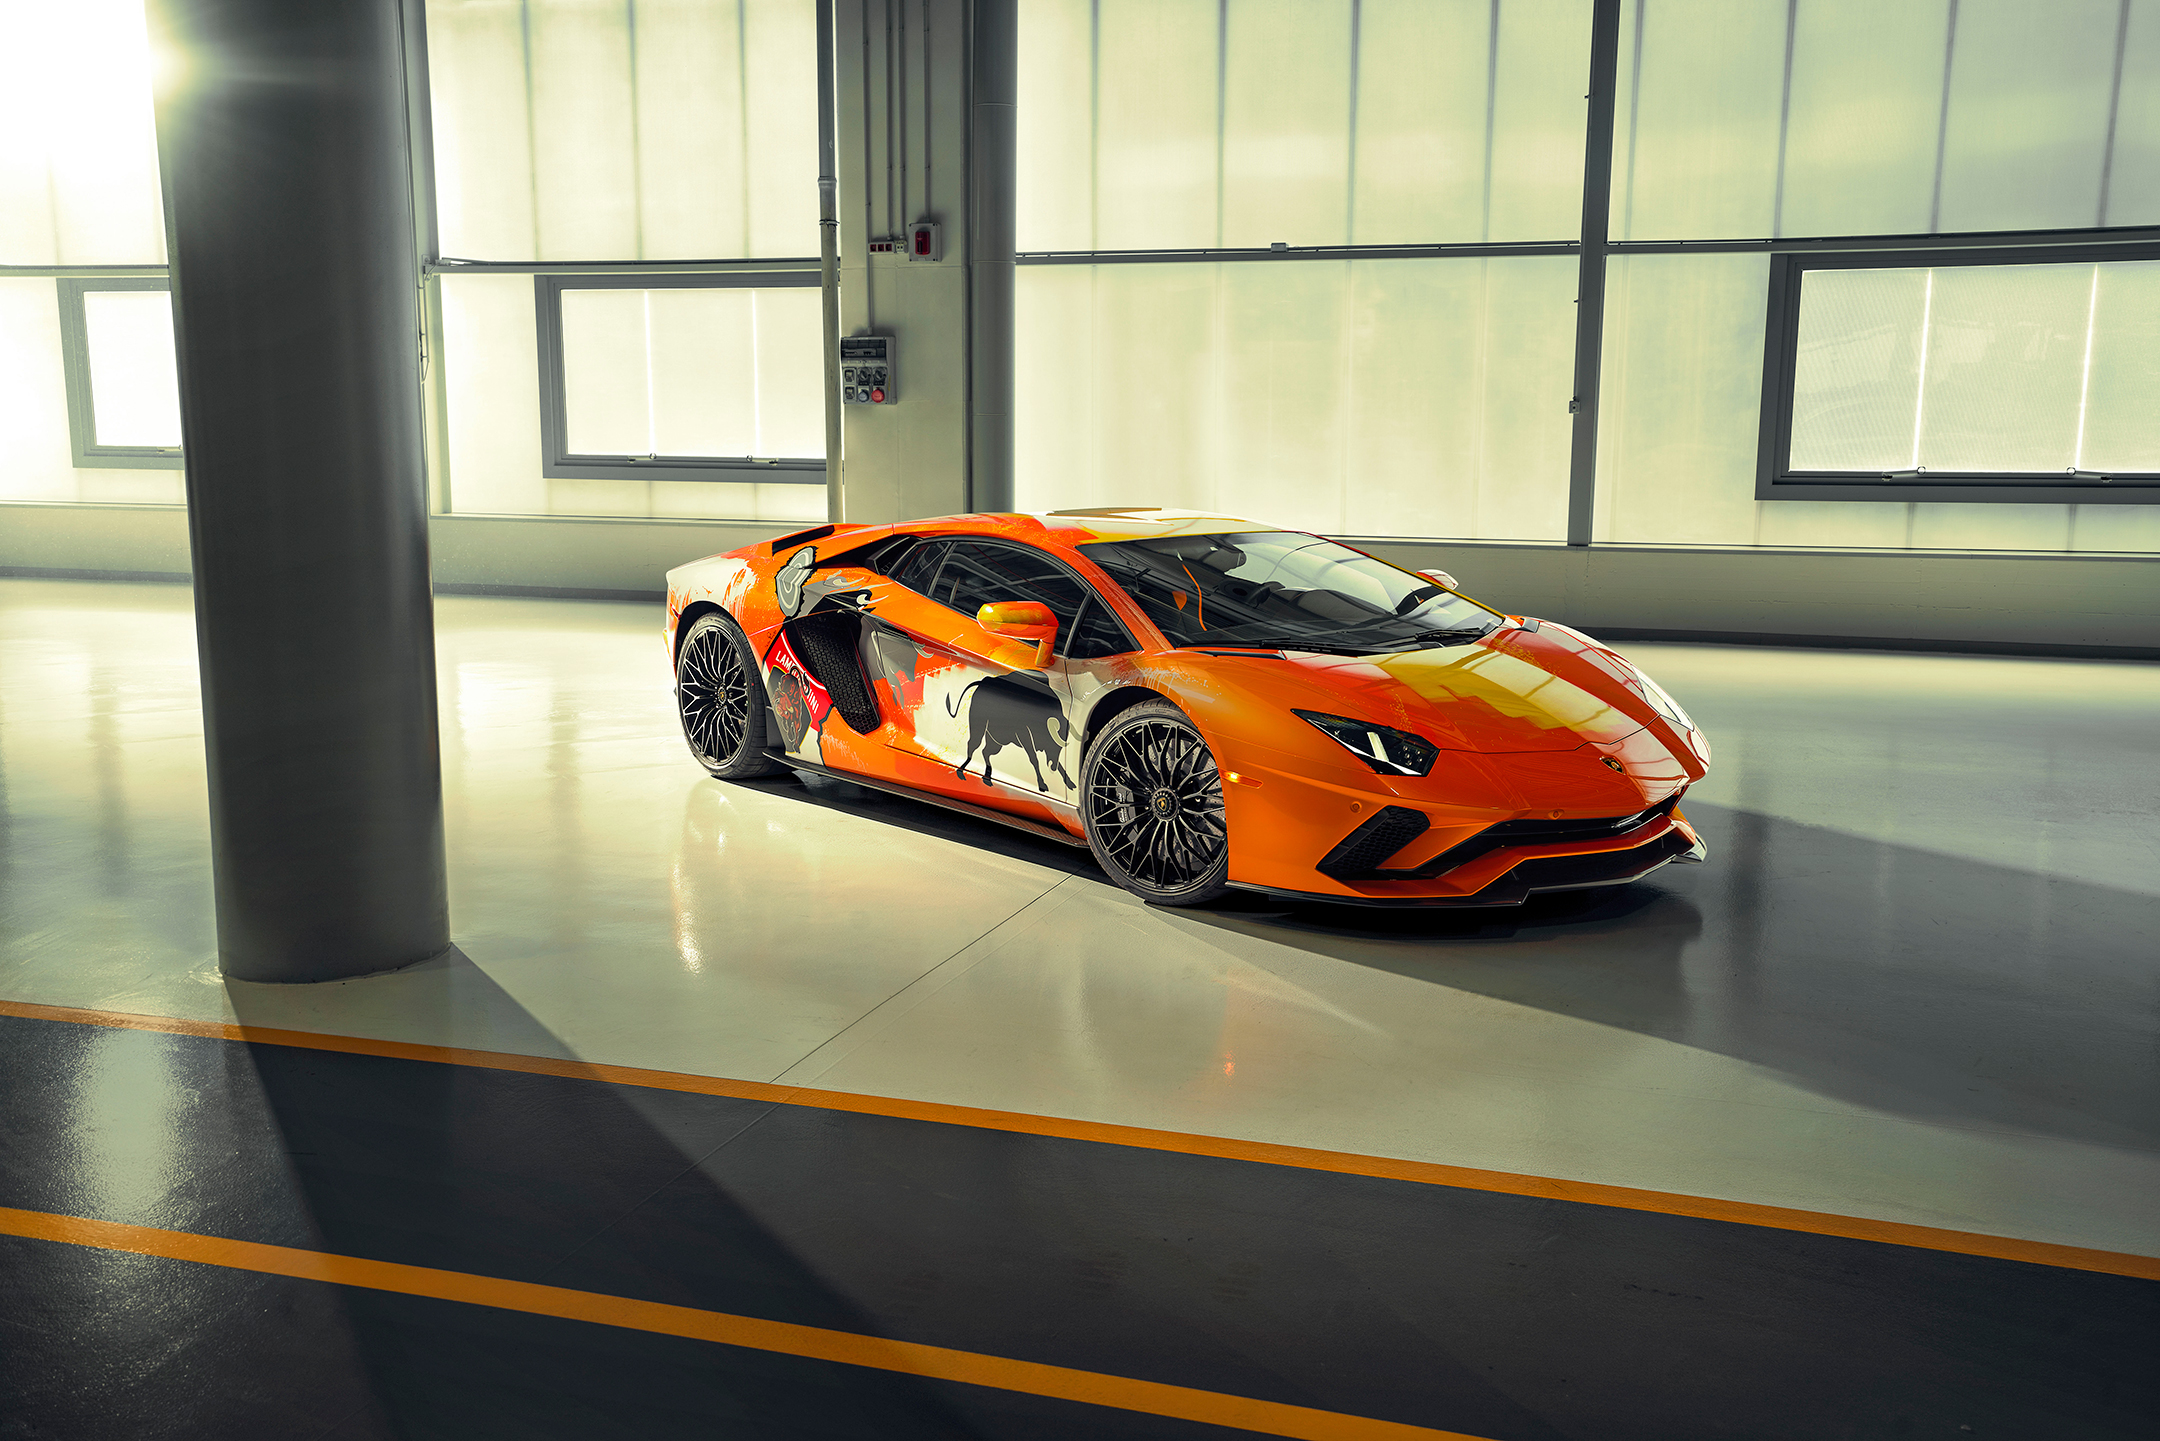 Lamborghini one-off Aventador S by Skyler Grey Art - 2019 - top - front-face / face avant